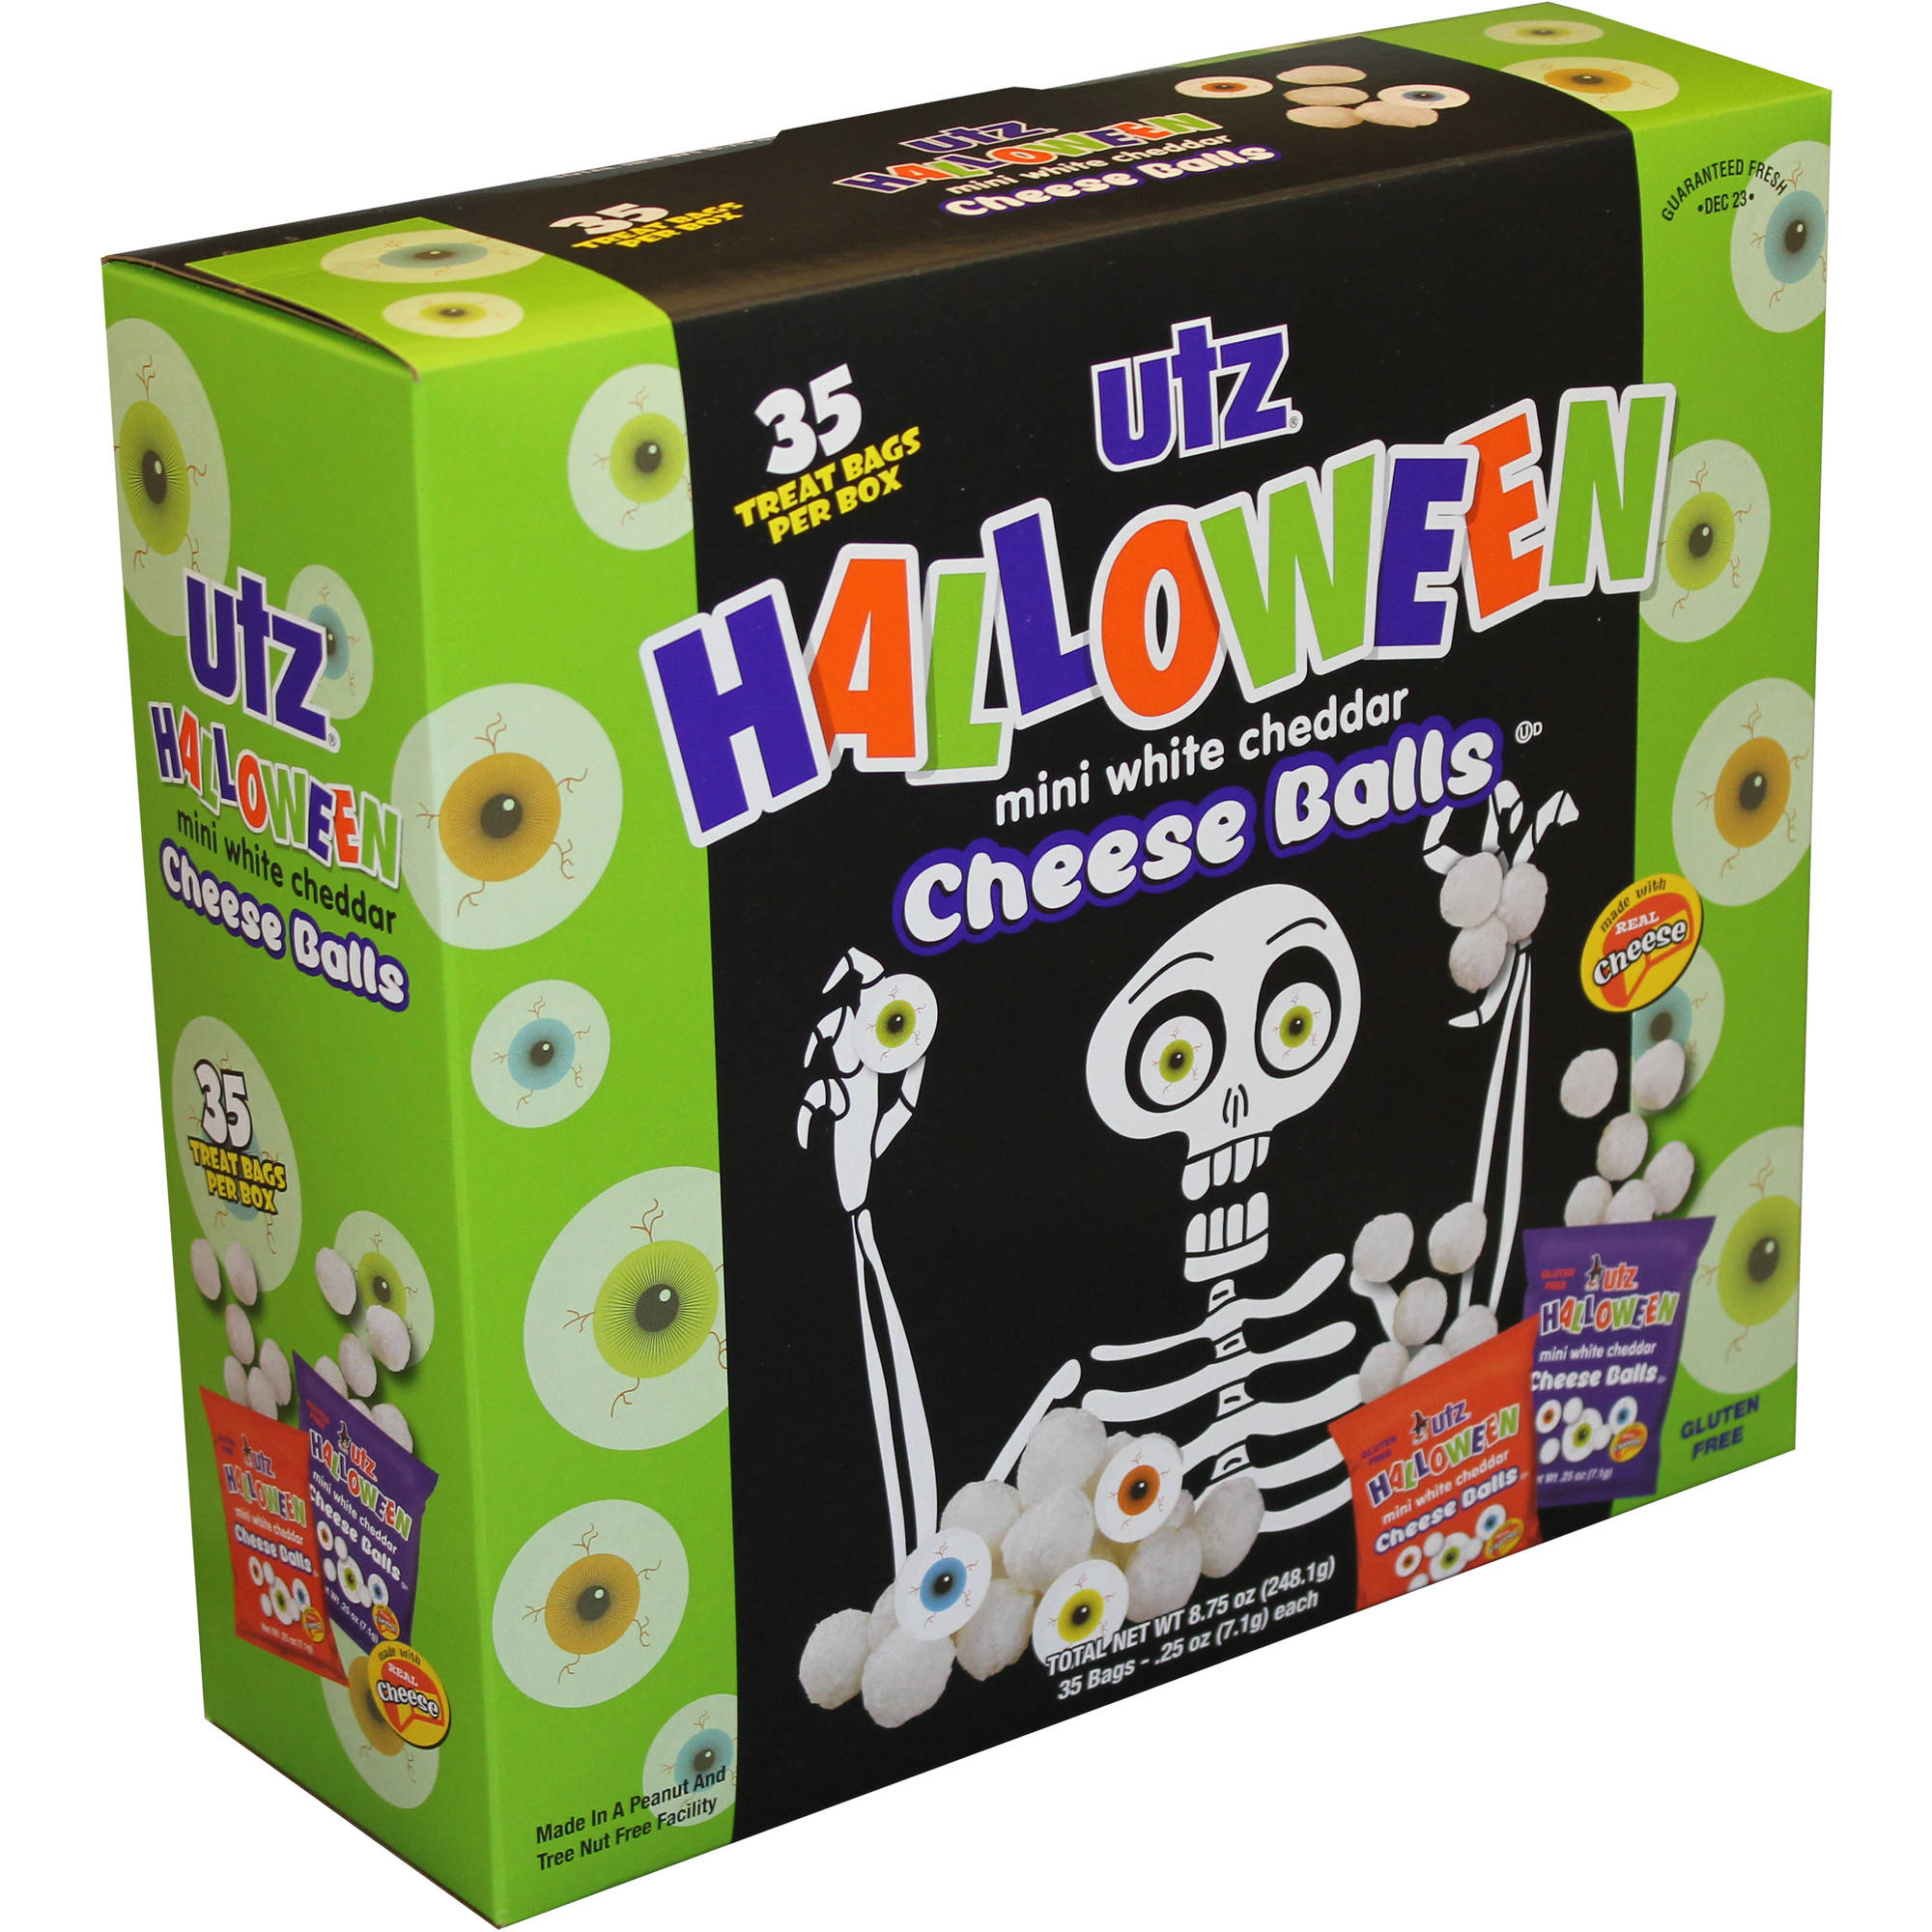 Utz Halloween Mini White Cheddar Cheese Balls, .25 oz, 35 count